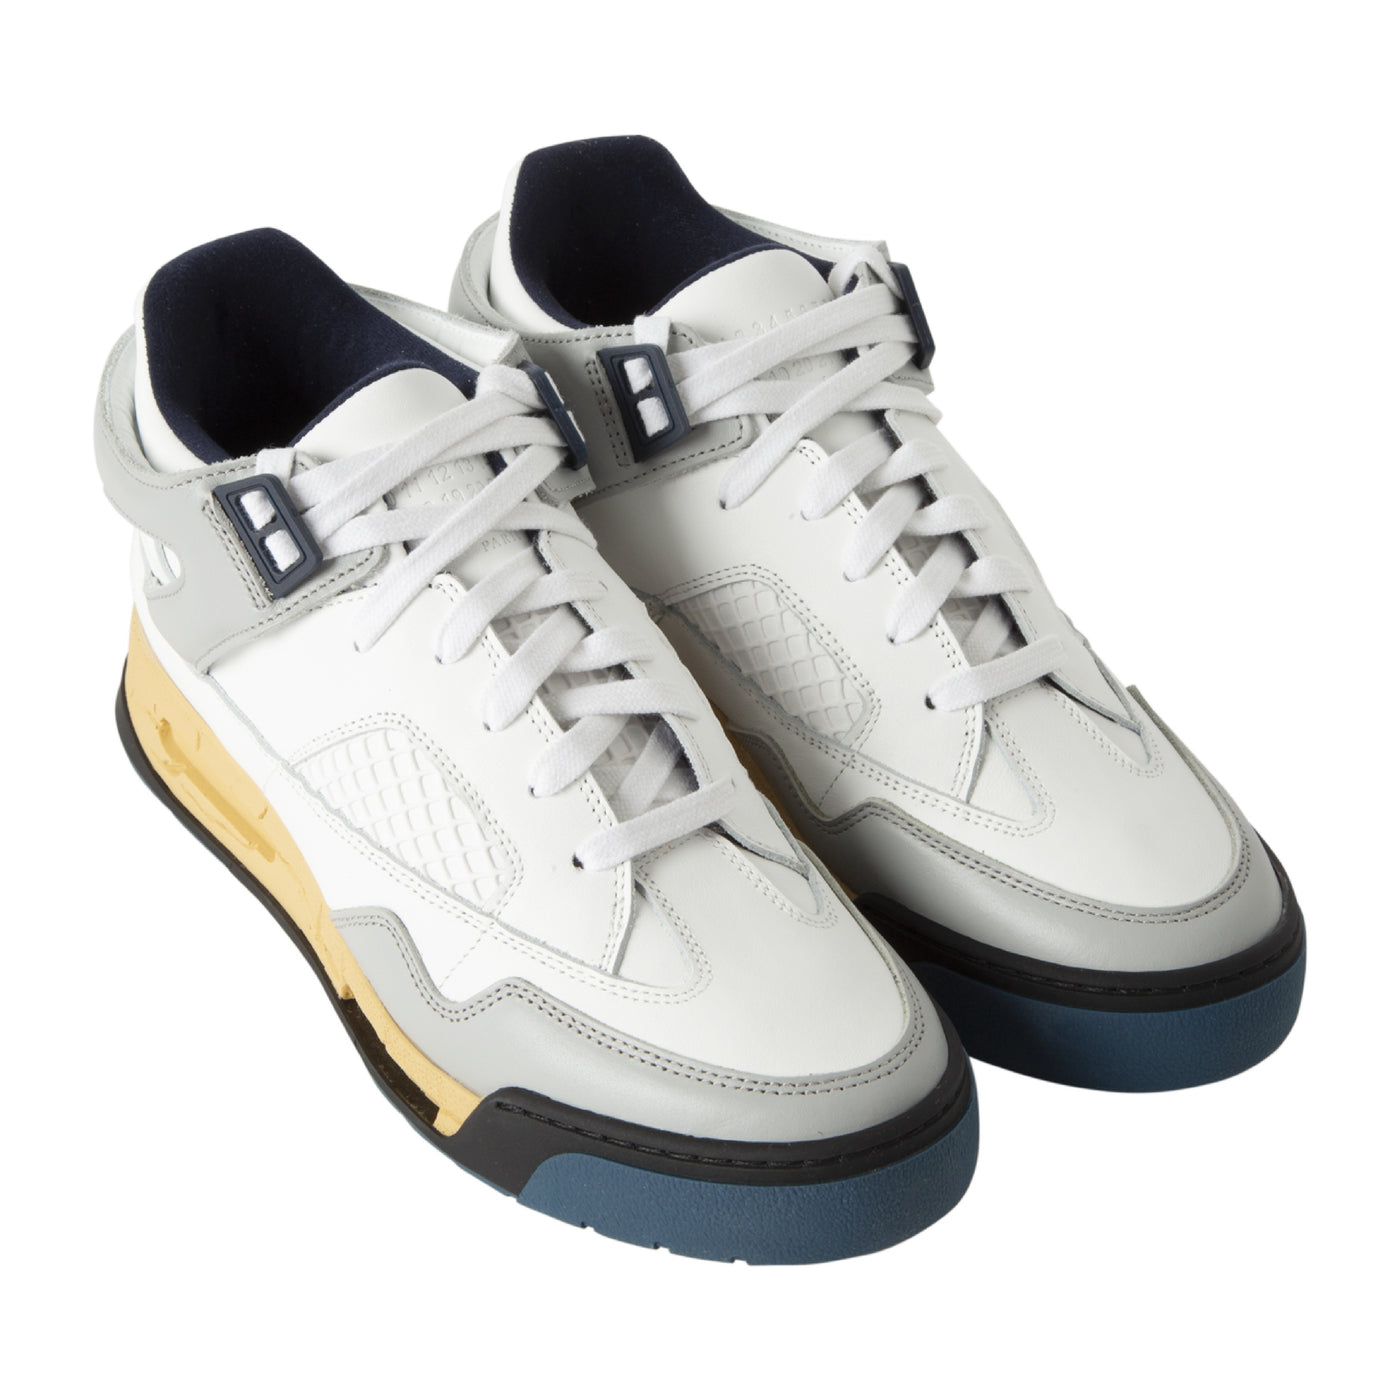 Load image into Gallery viewer, MAISON MARTIN MARGIELA HIGH-TOP SNEAKERS WHITE